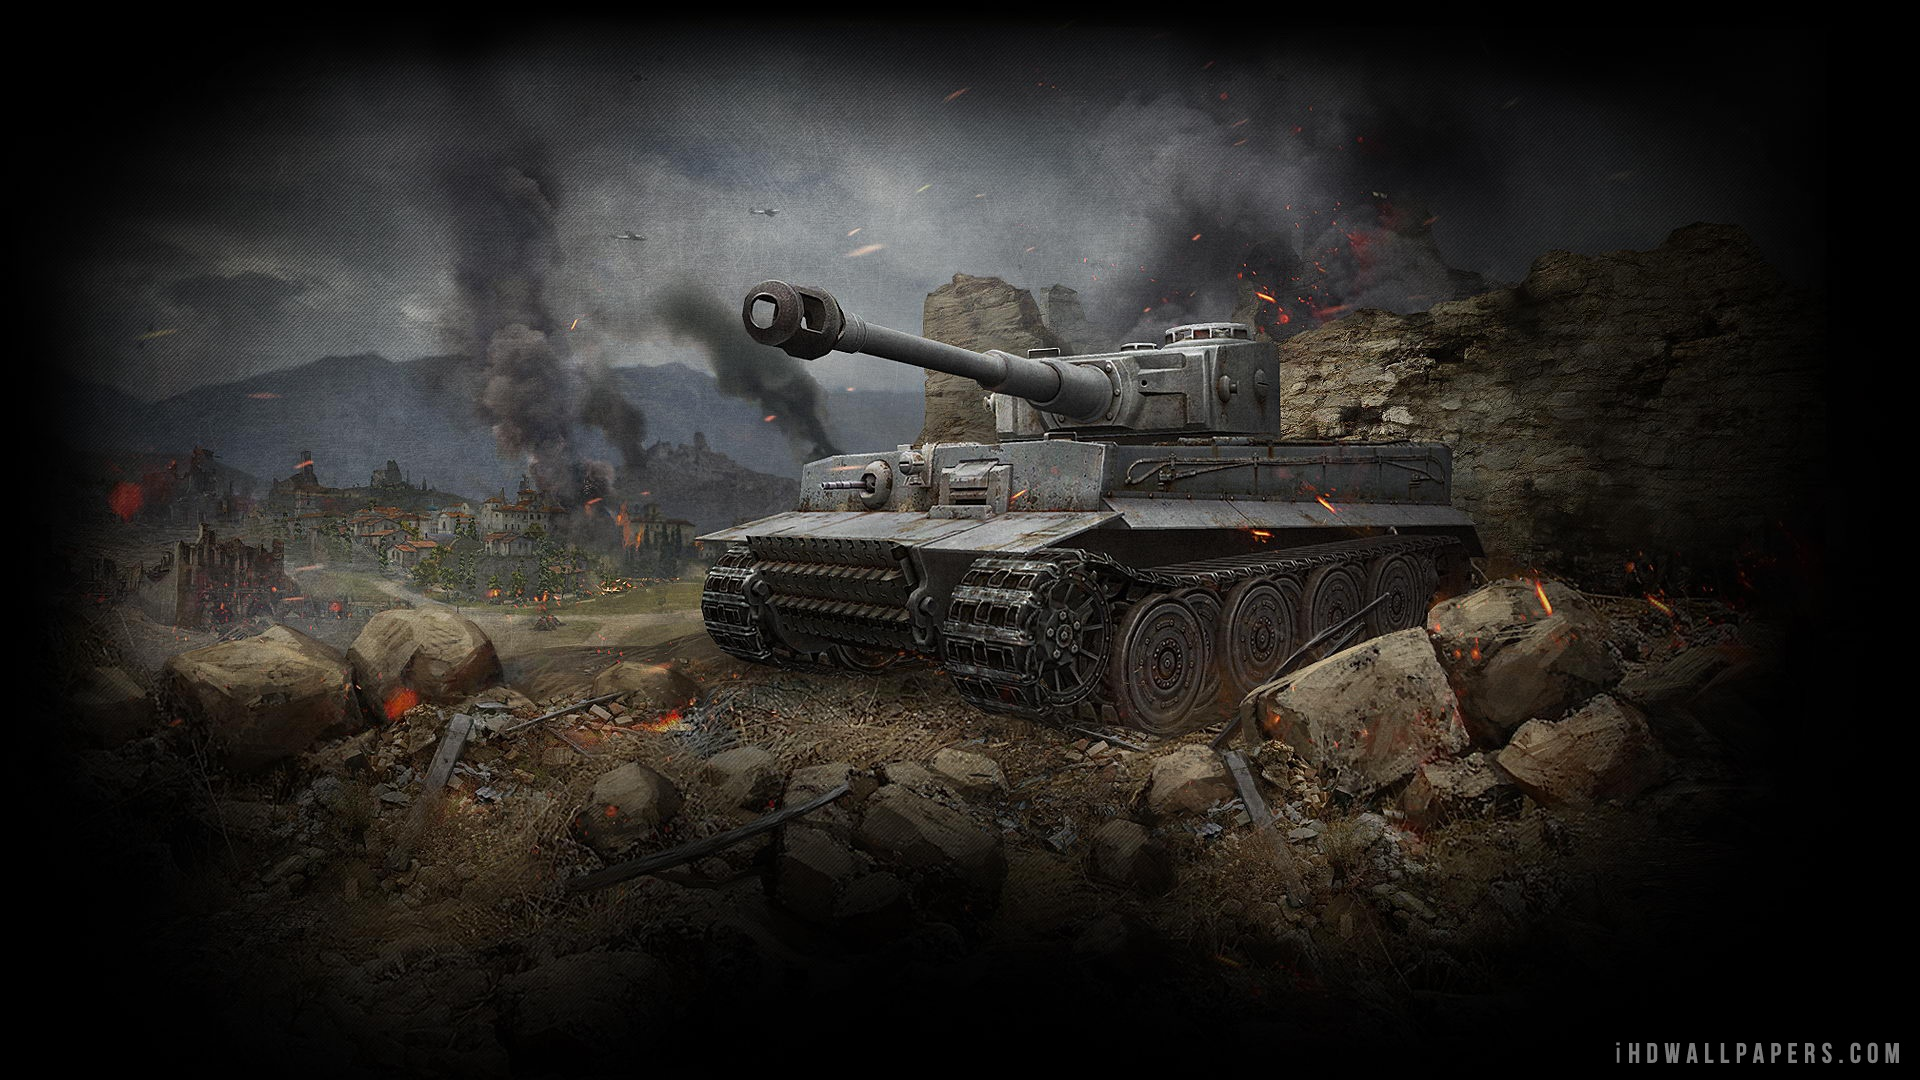 Tiger Tank World of Tanks HD Wallpaper   iHD Wallpapers 1920x1080